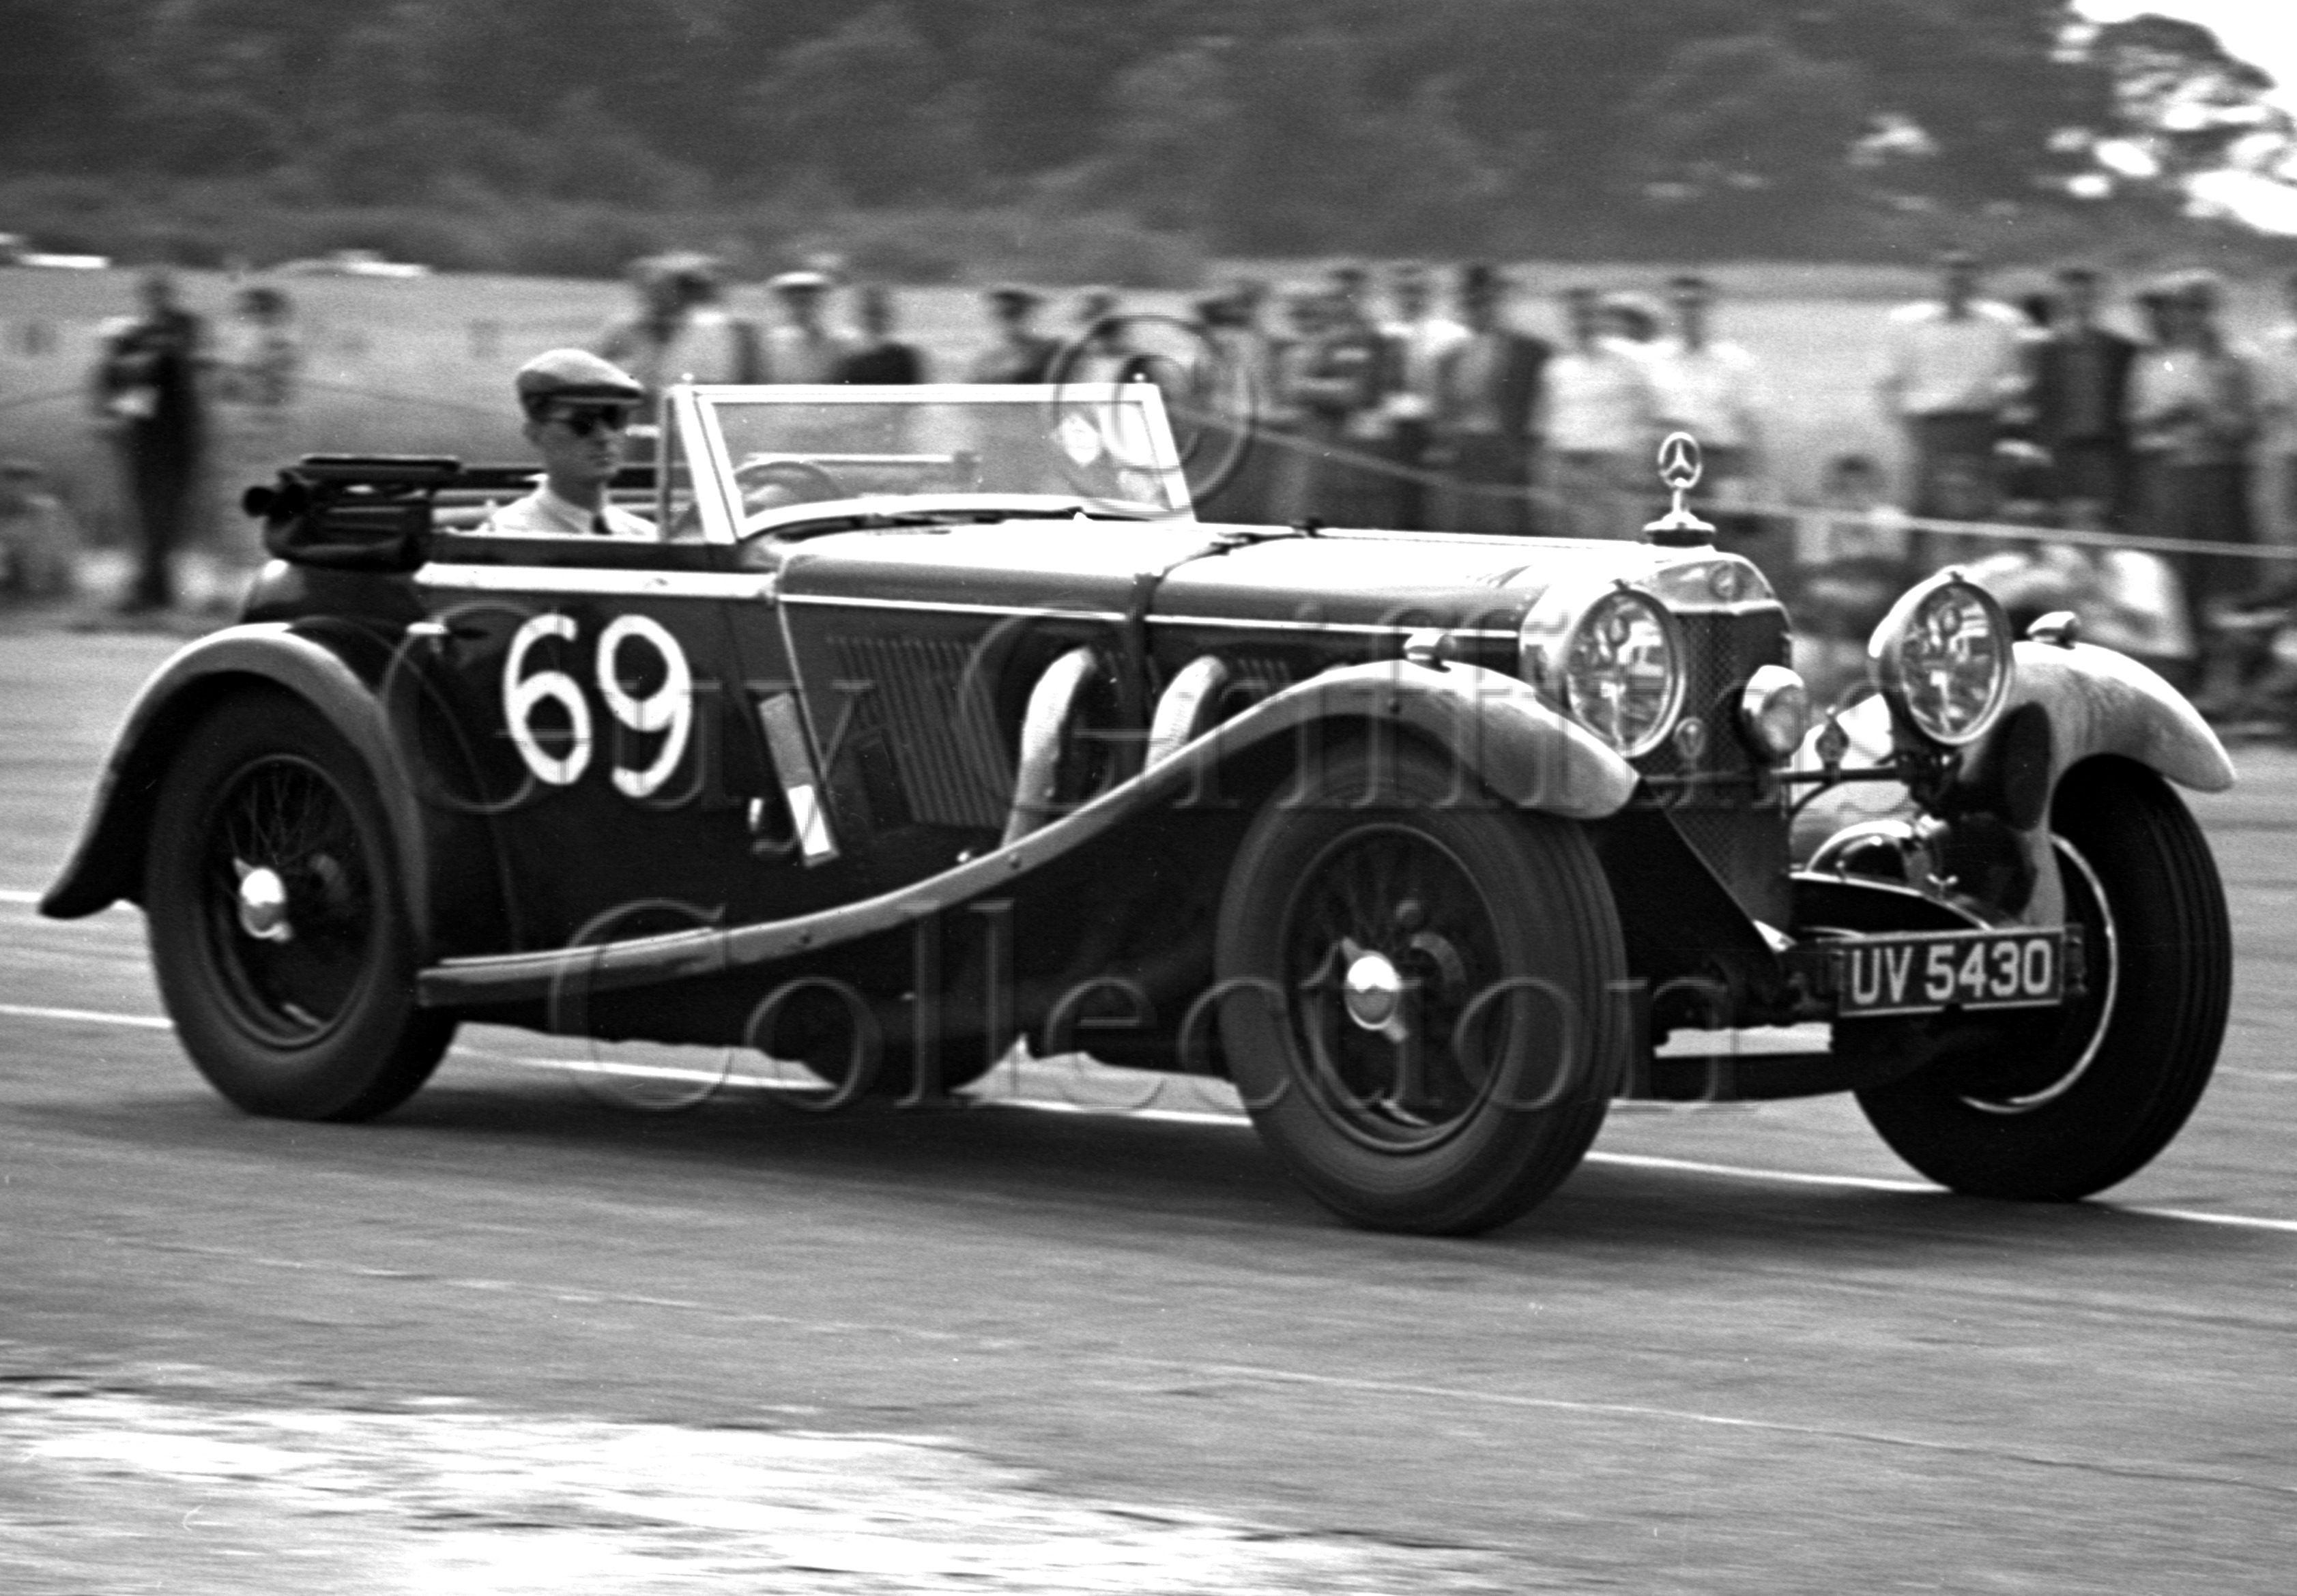 19-152–G-M-Crozier–Mercedes-Benz–Silverstone–23-07-1949.jpg - The Guy Griffiths Collection